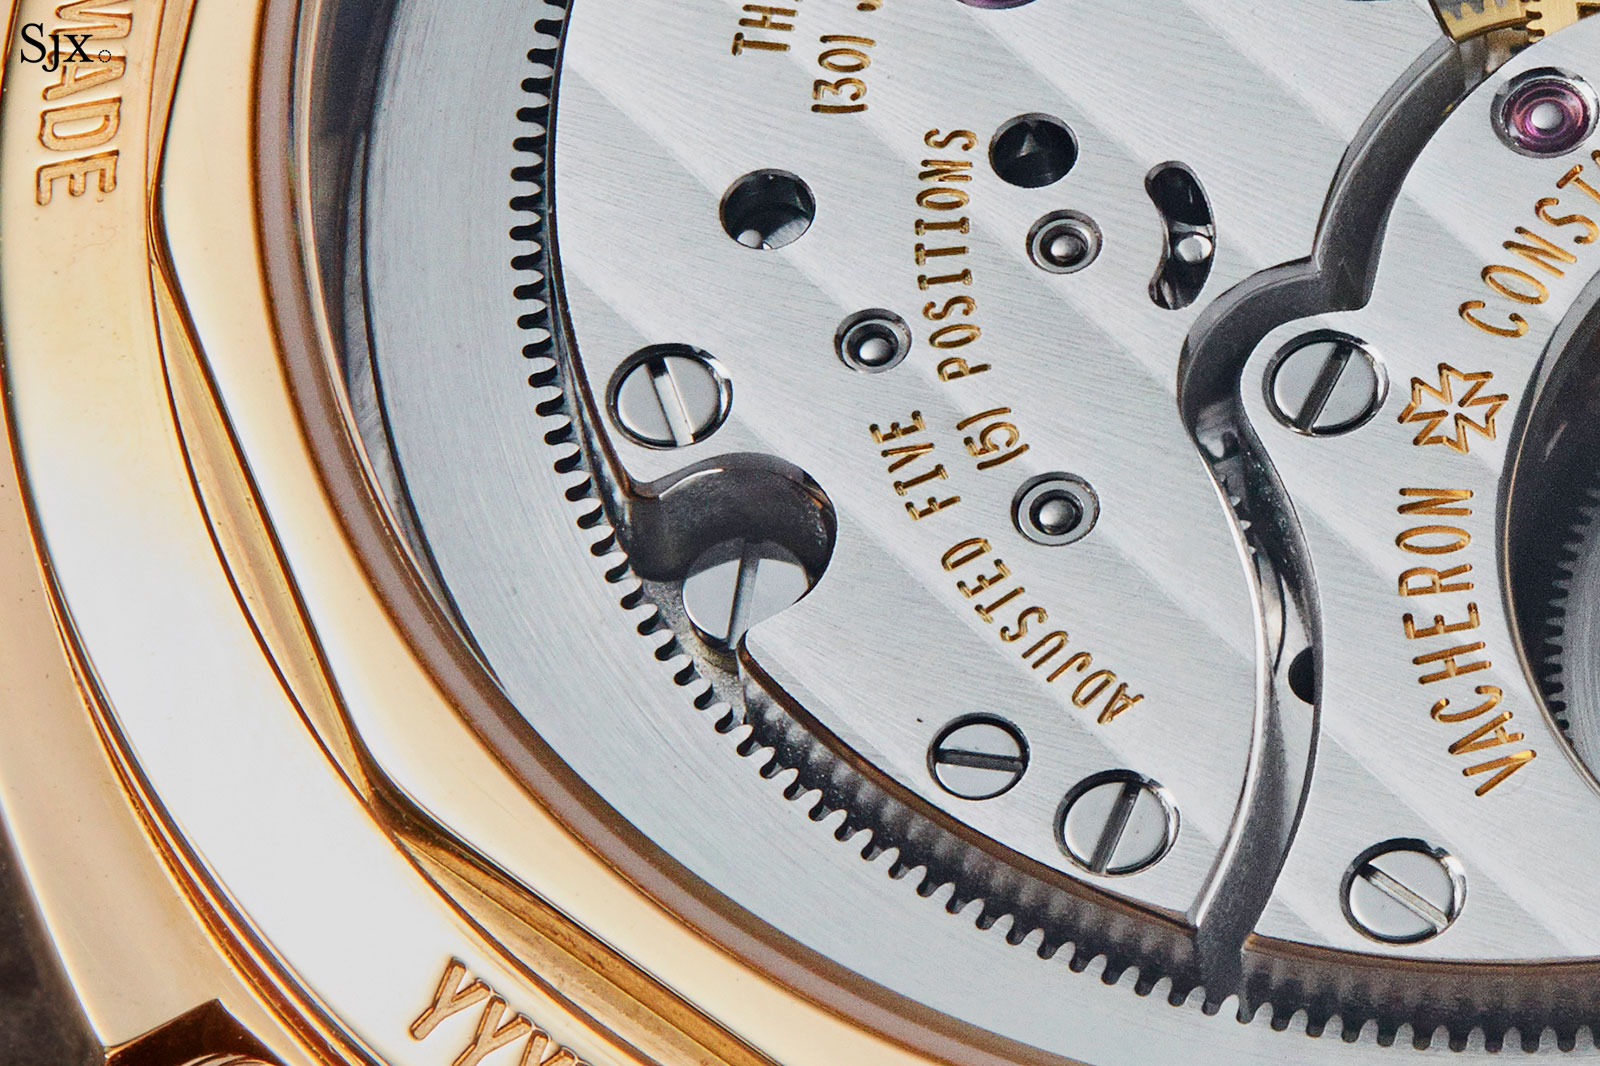 Vacheron Constantin FiftySix Tourbillon 10